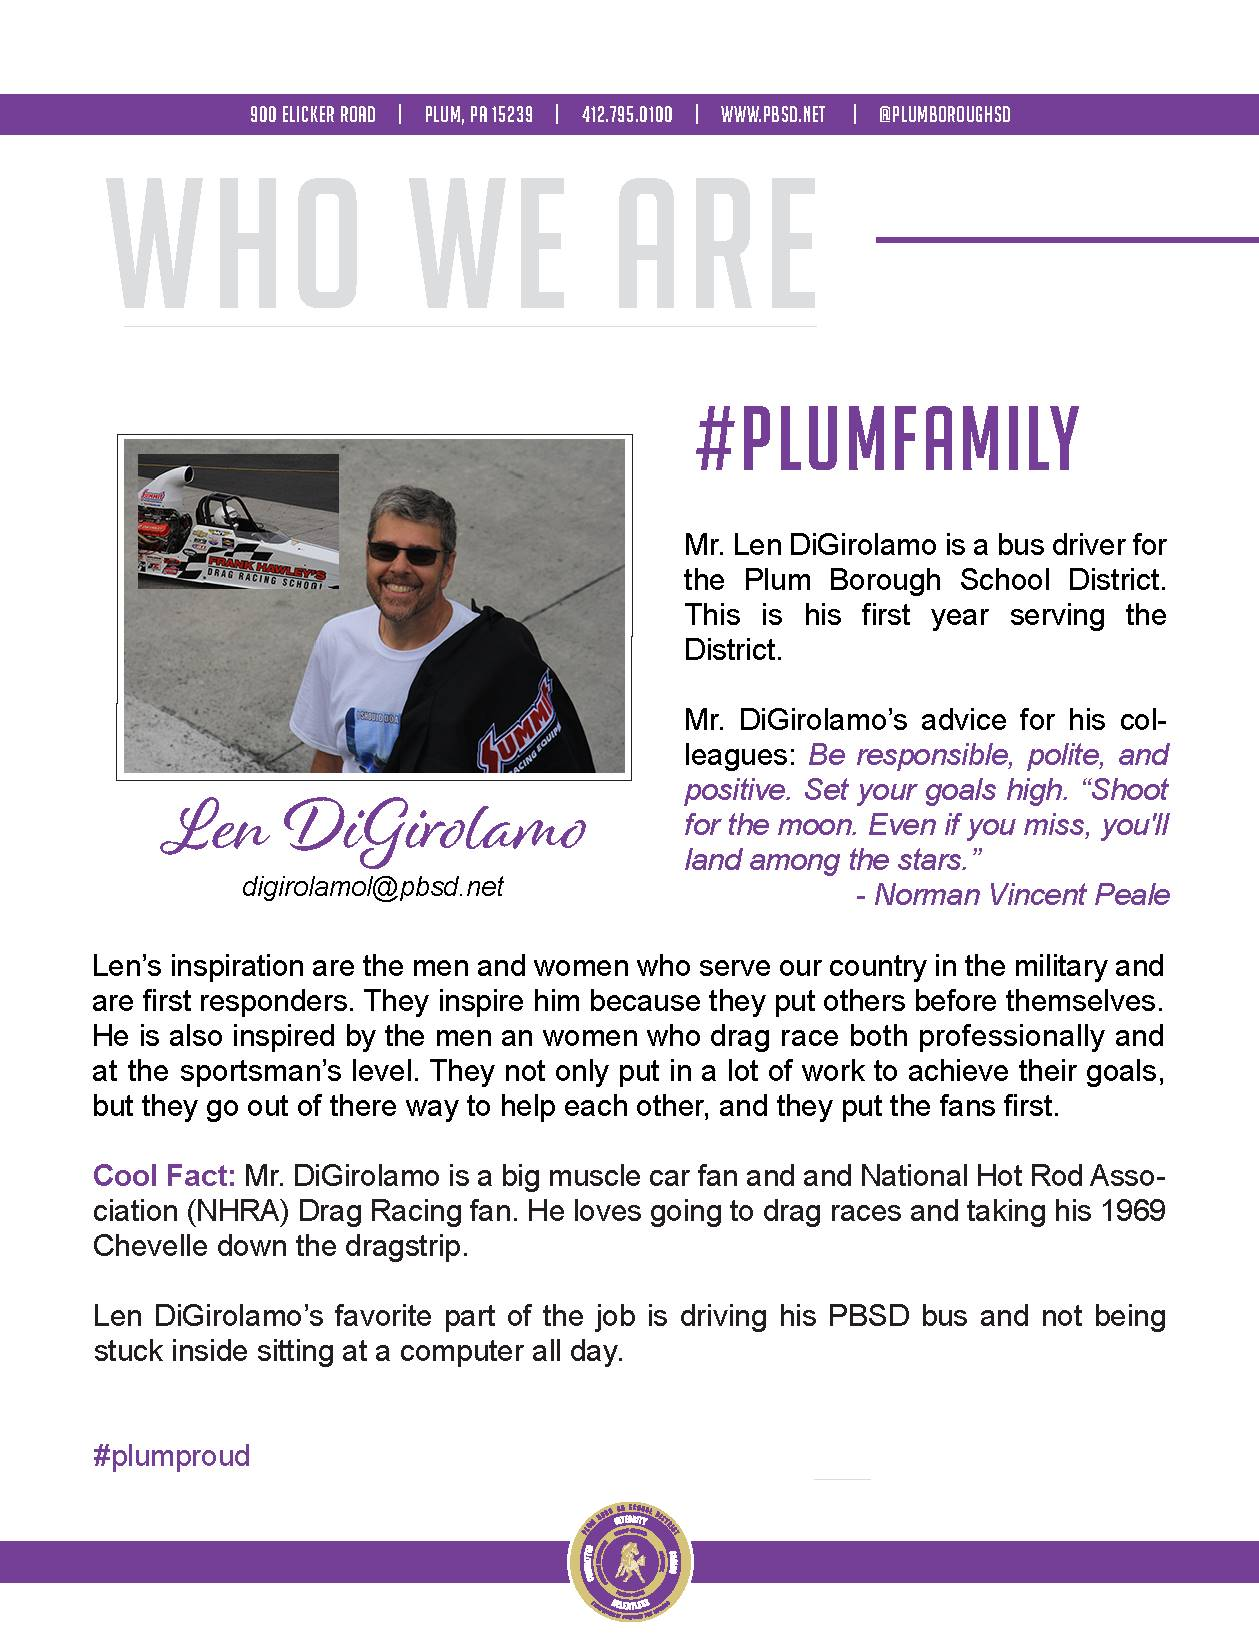 Who We Are Wednesday features Len DiGirolamo.